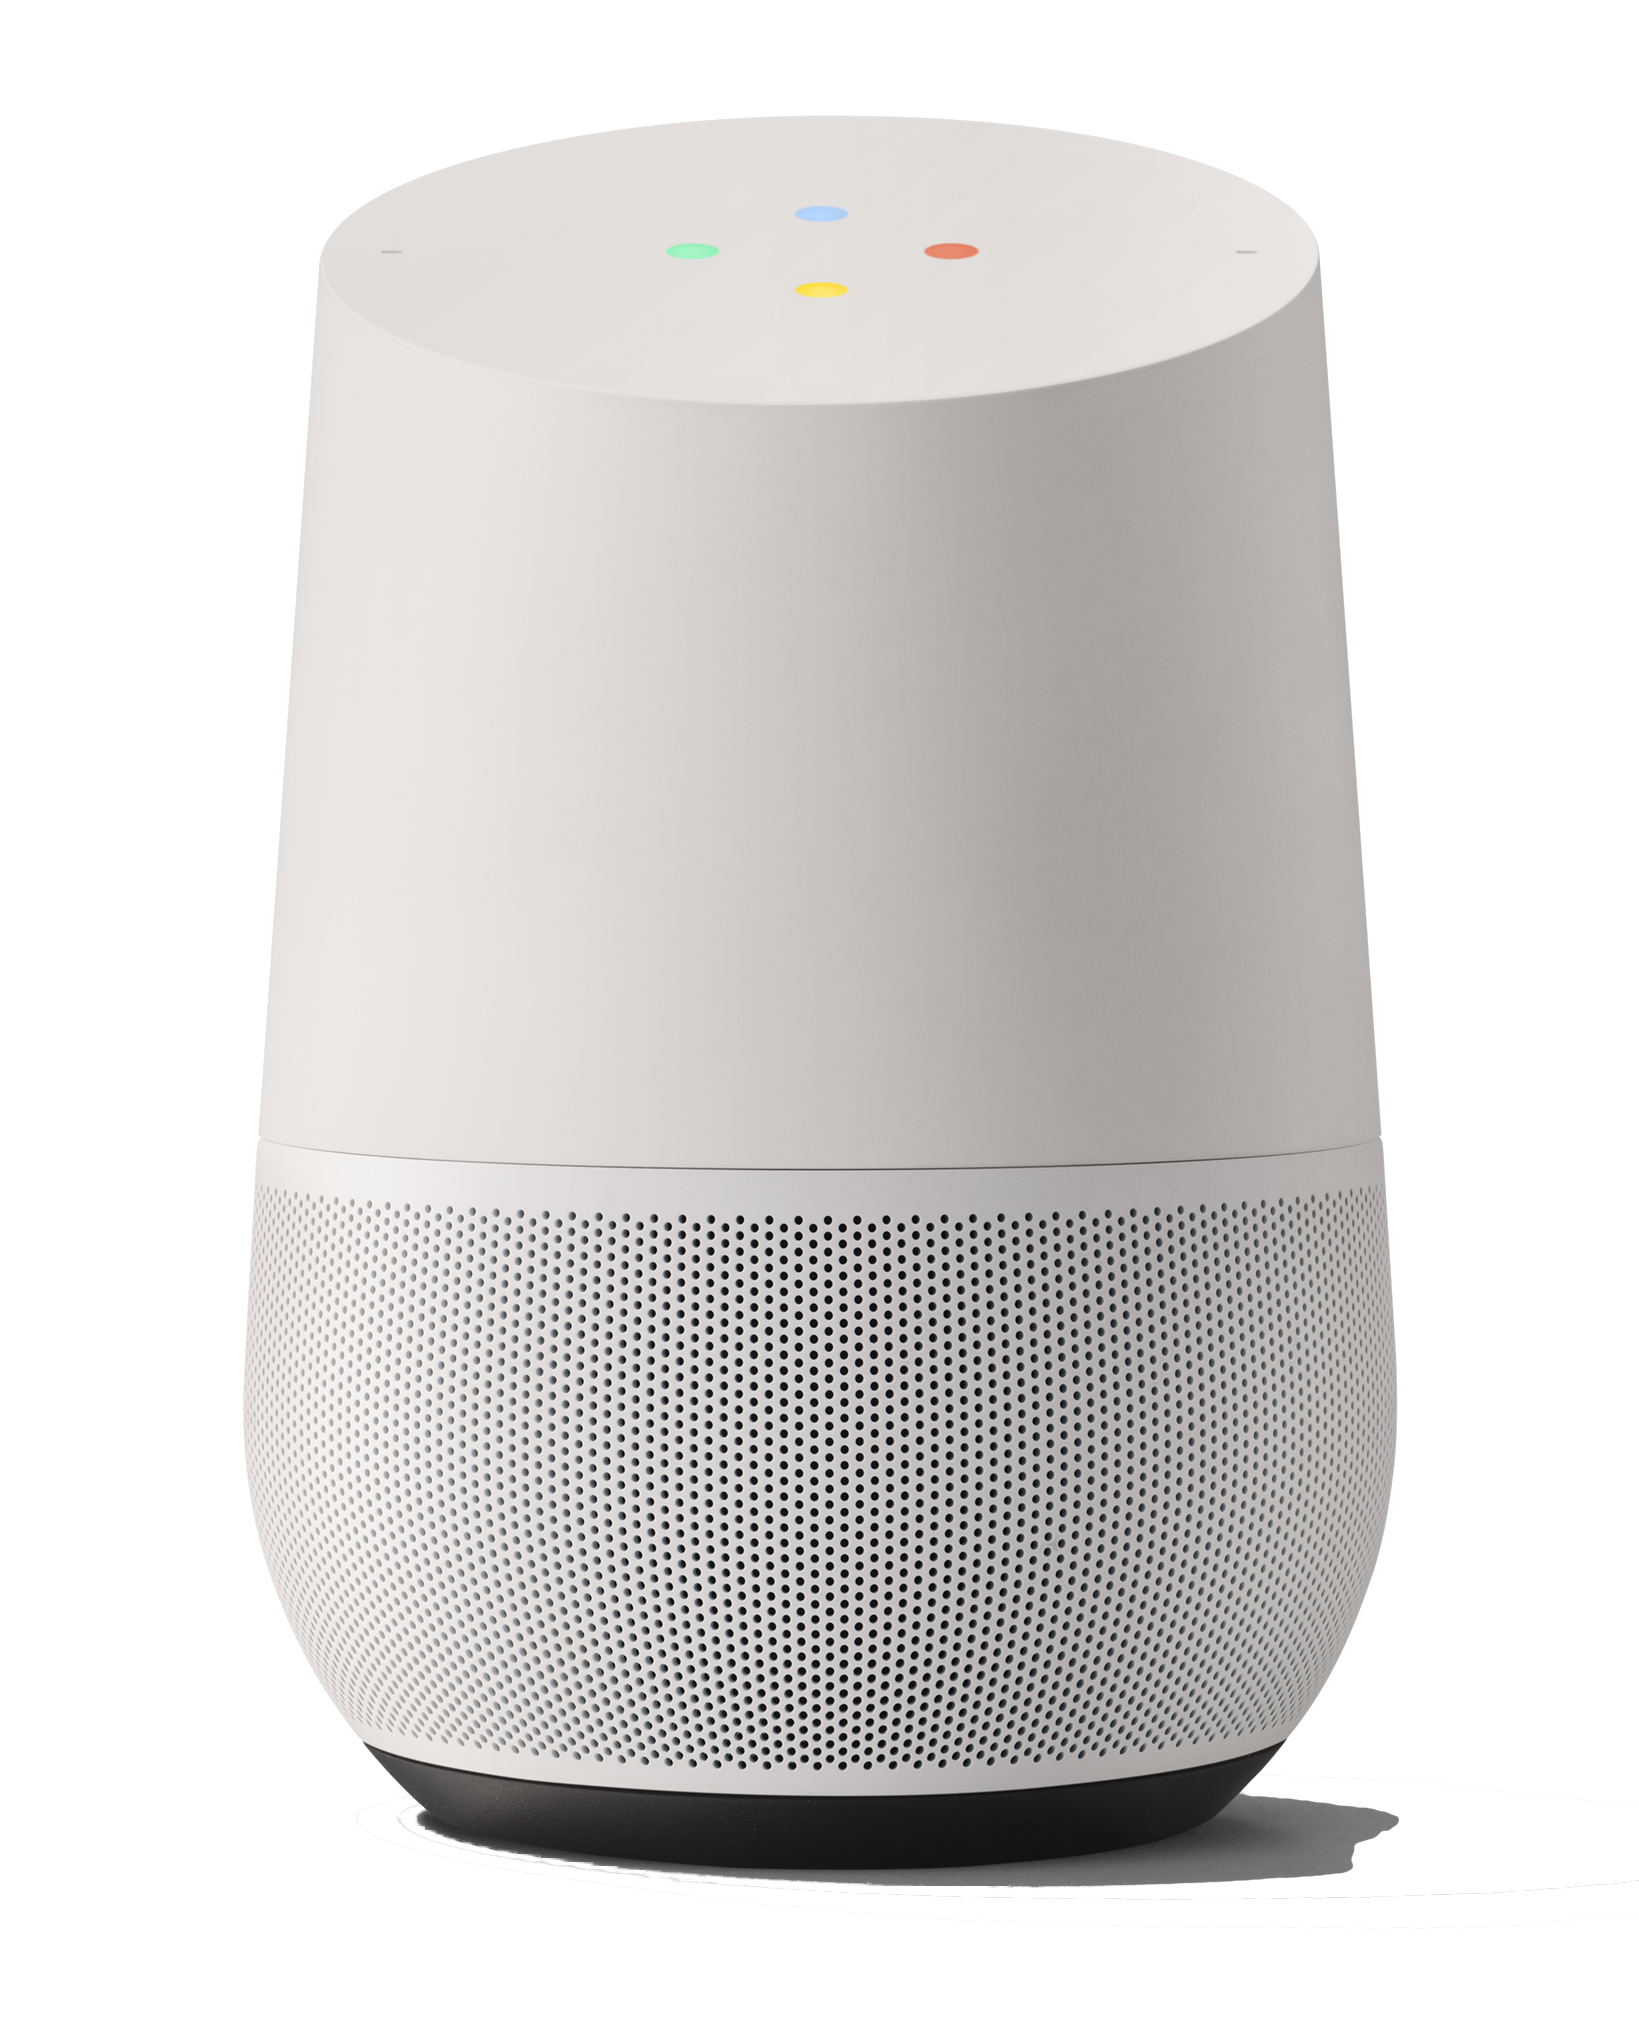 google-home-press-render-transparent.png